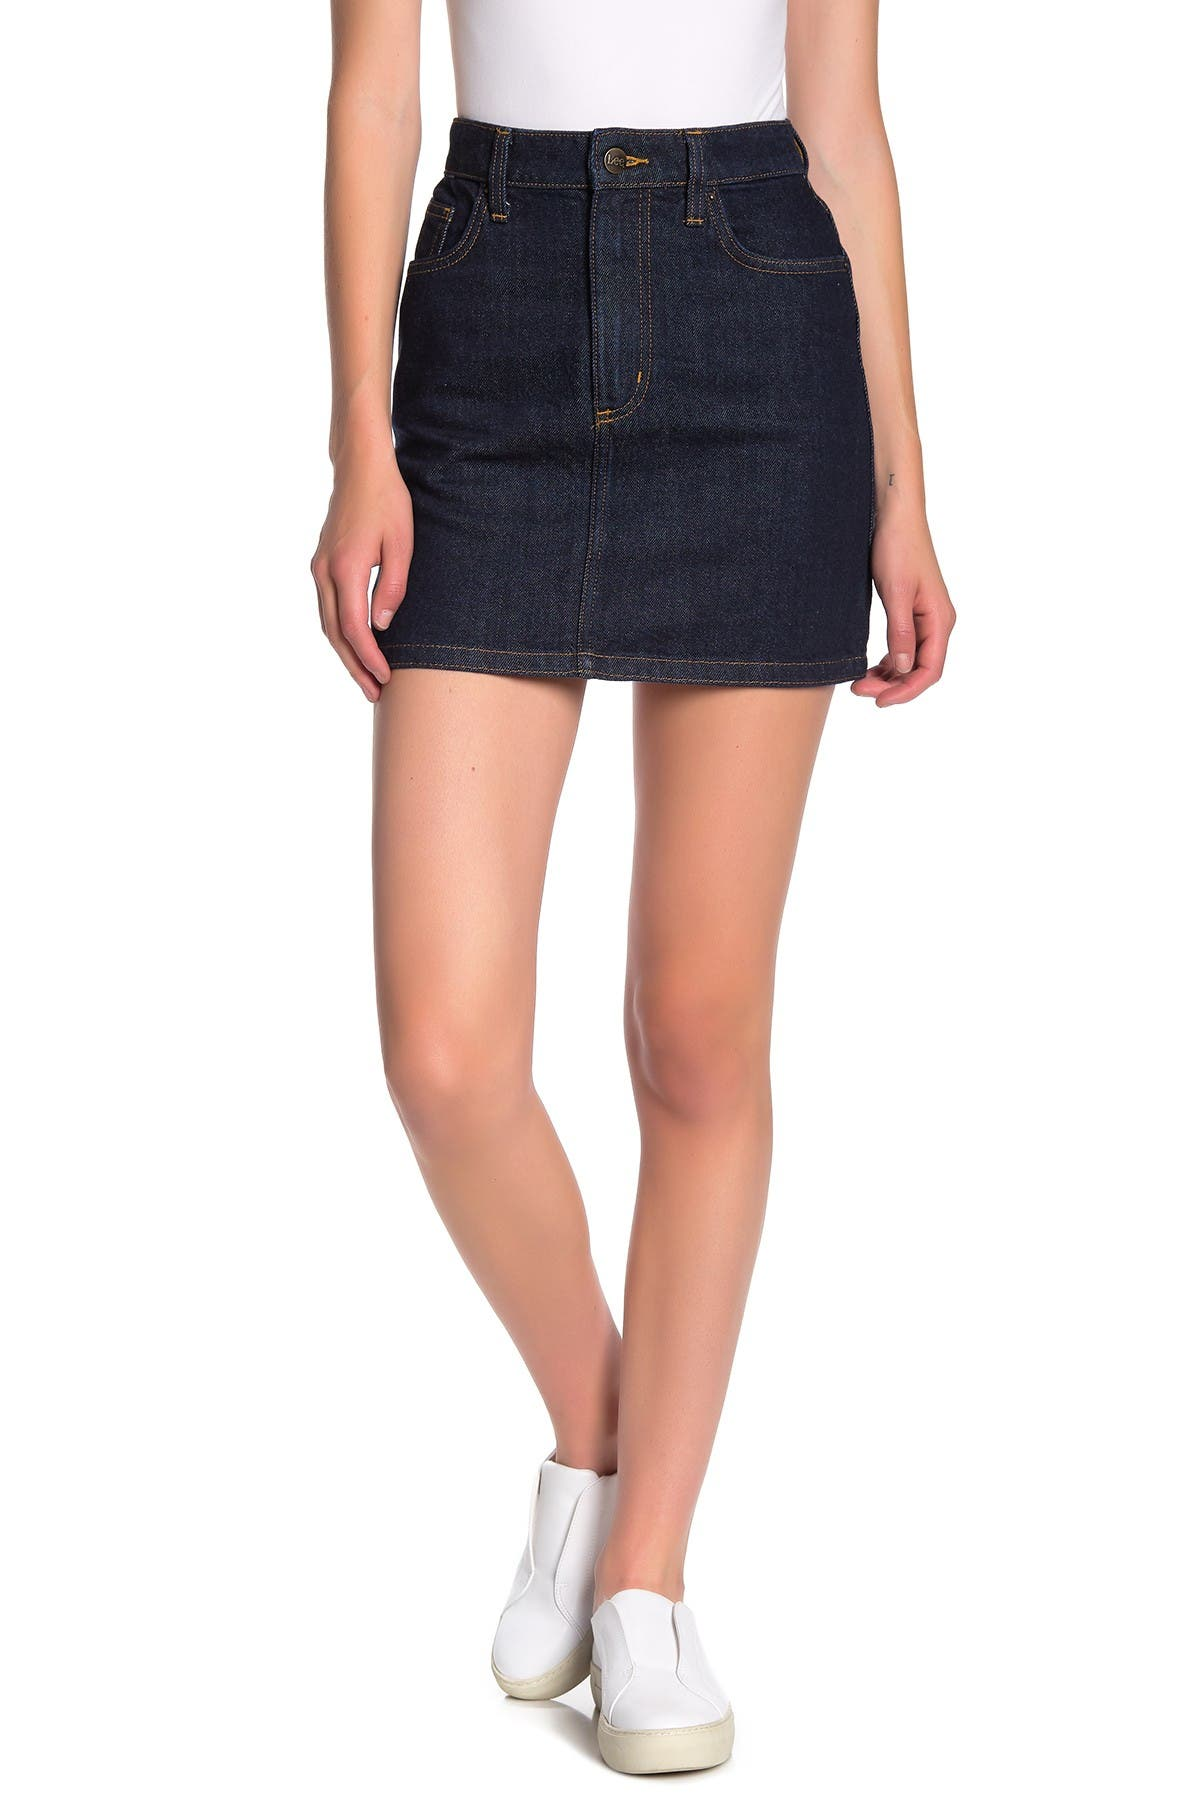 Image of LEE High Waisted Jean Mini Skirt